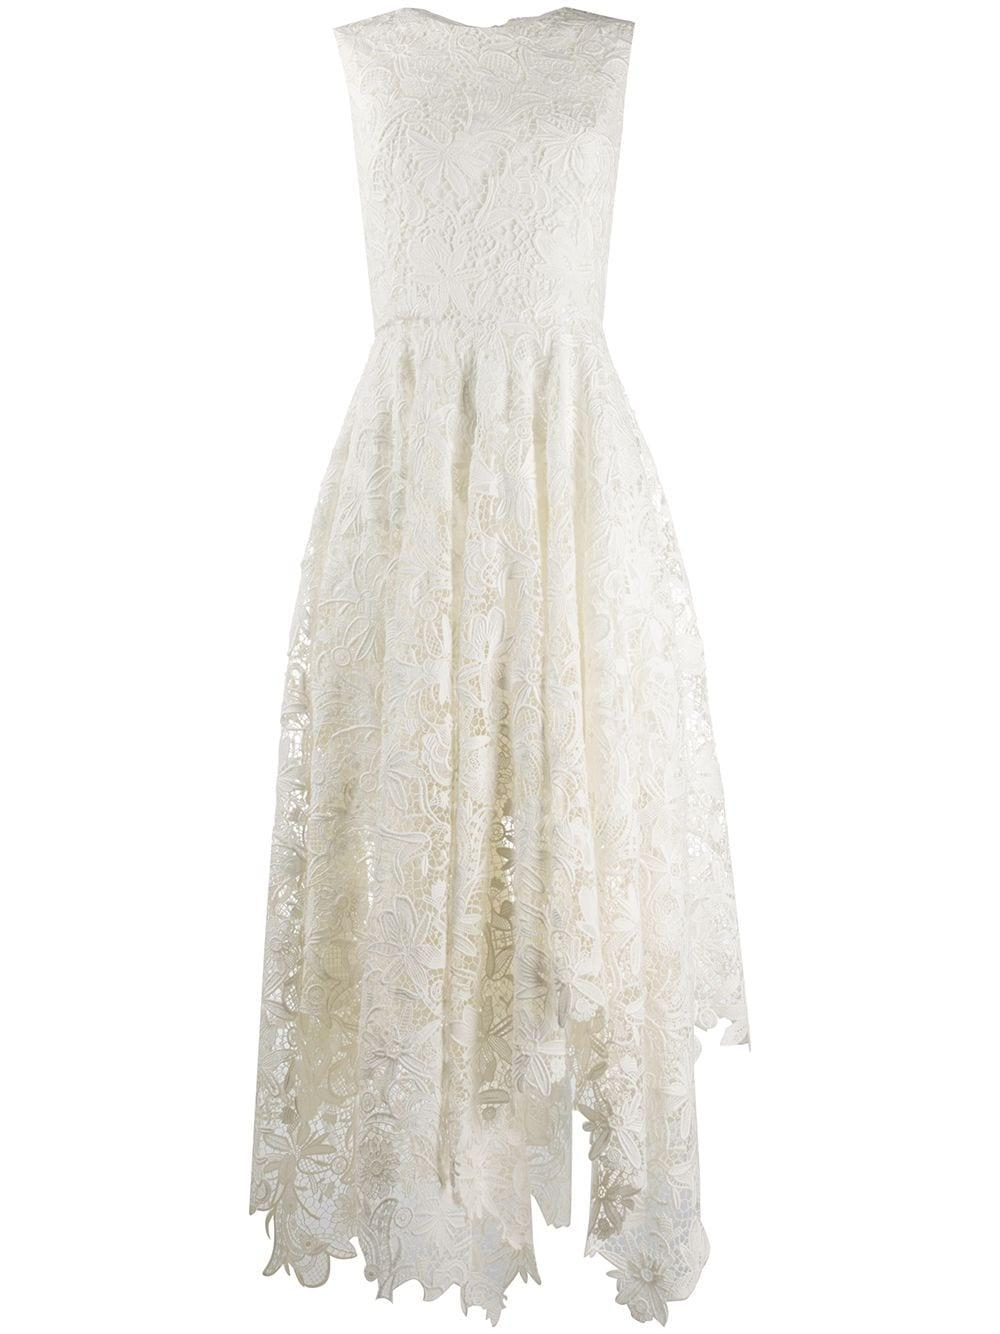 Sleeveless All Over Lace Dress With Asymmetrical Hem